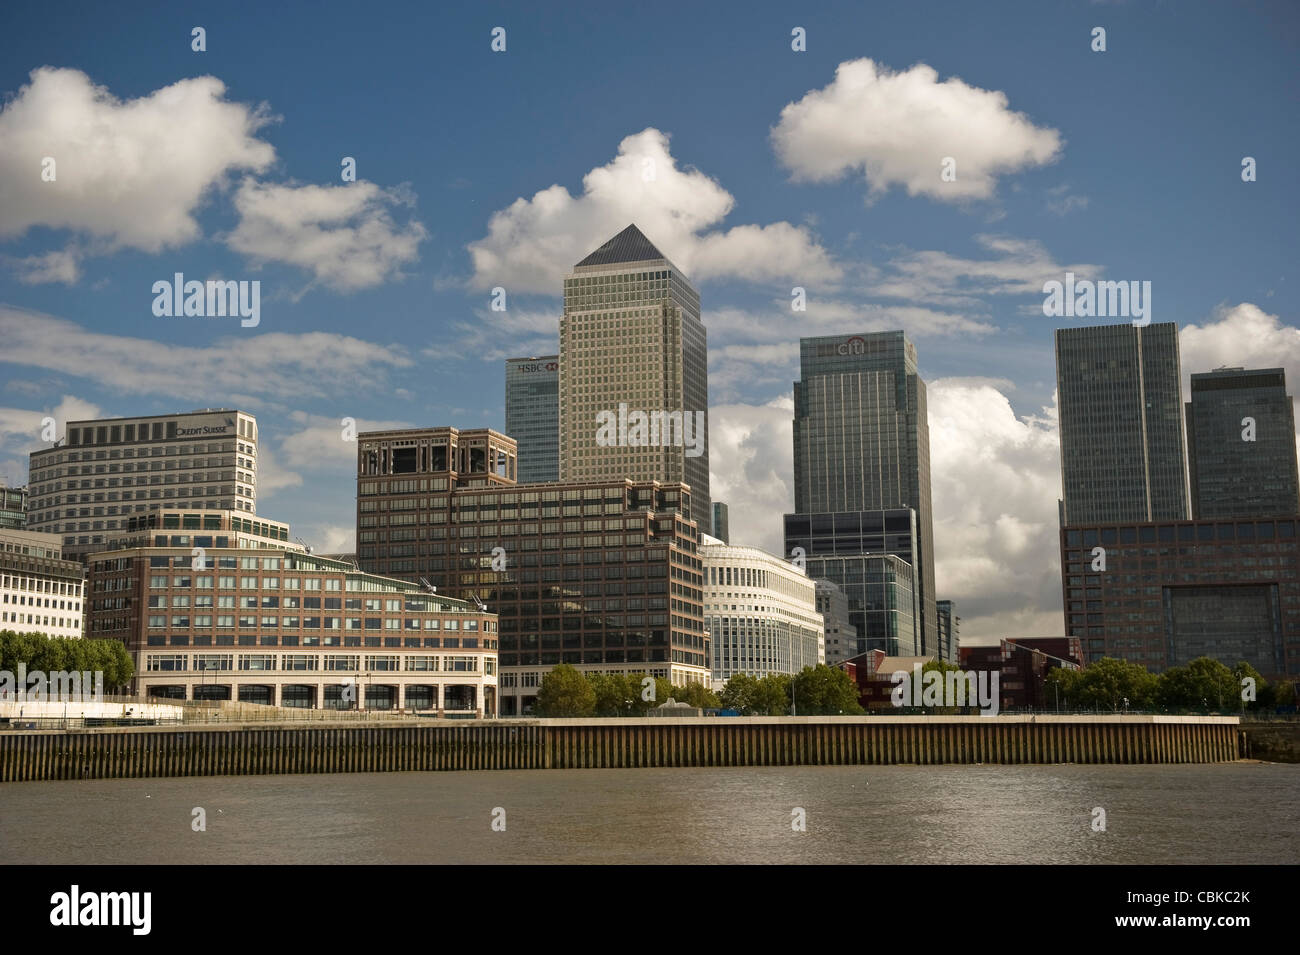 Docklands and Canary Wharf viewed from the River Thames, London, UK - Stock Image